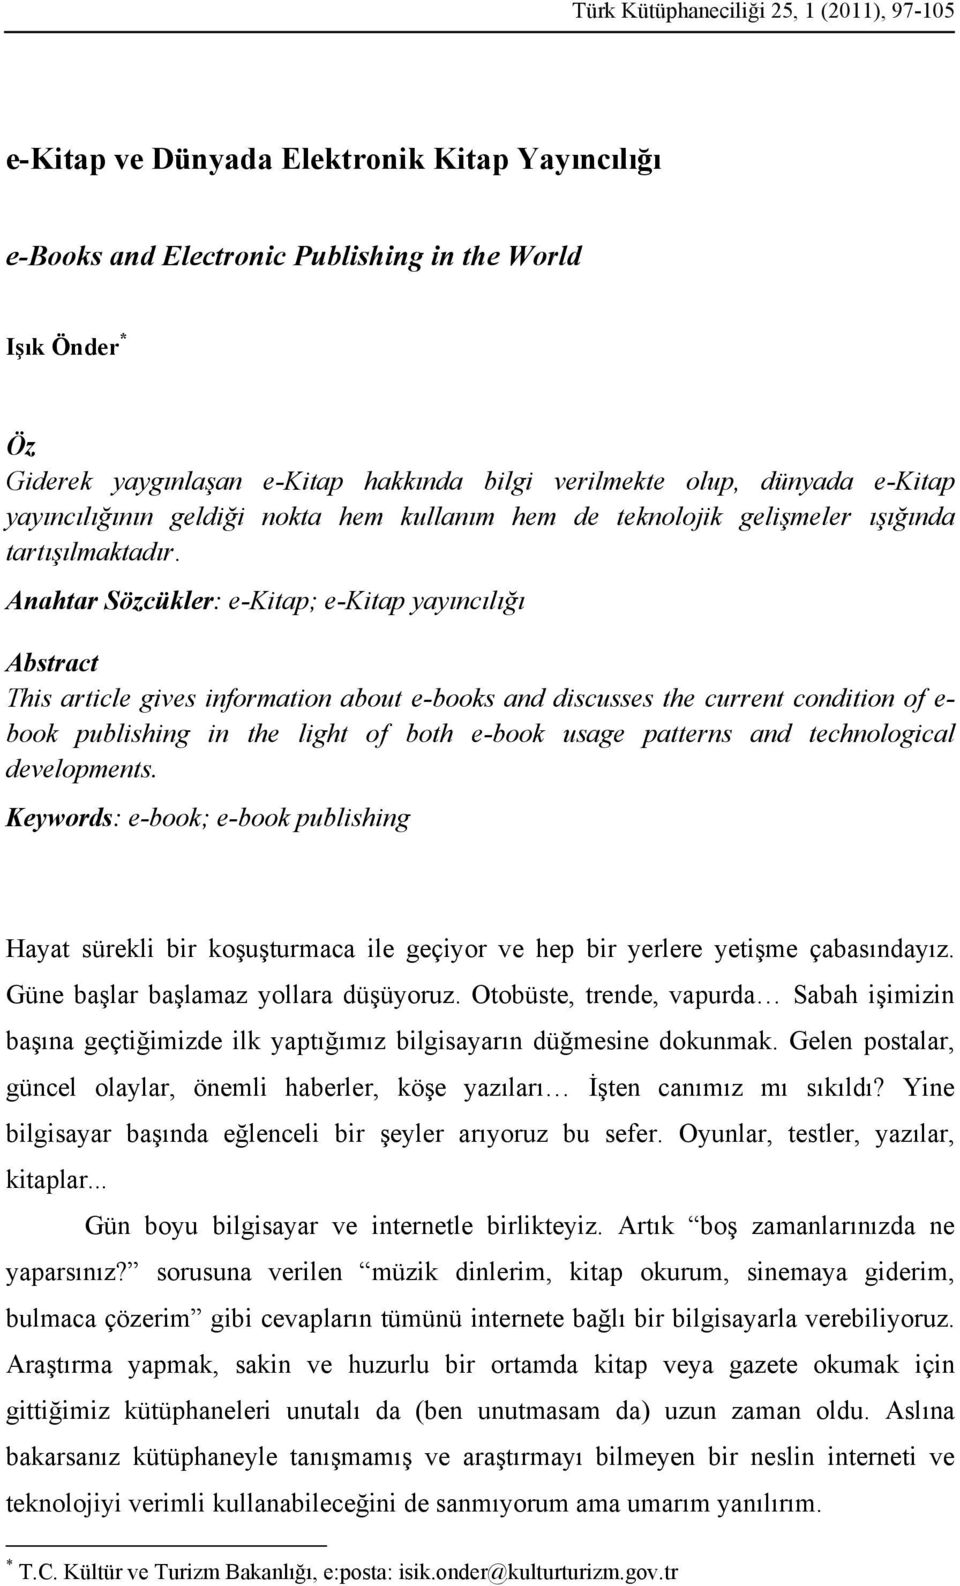 Anahtar Sözcükler: e-kitap; e-kitap yayıncılığı Abstract This article gives information about e-books and discusses the current condition of e- book publishing in the light of both e-book usage